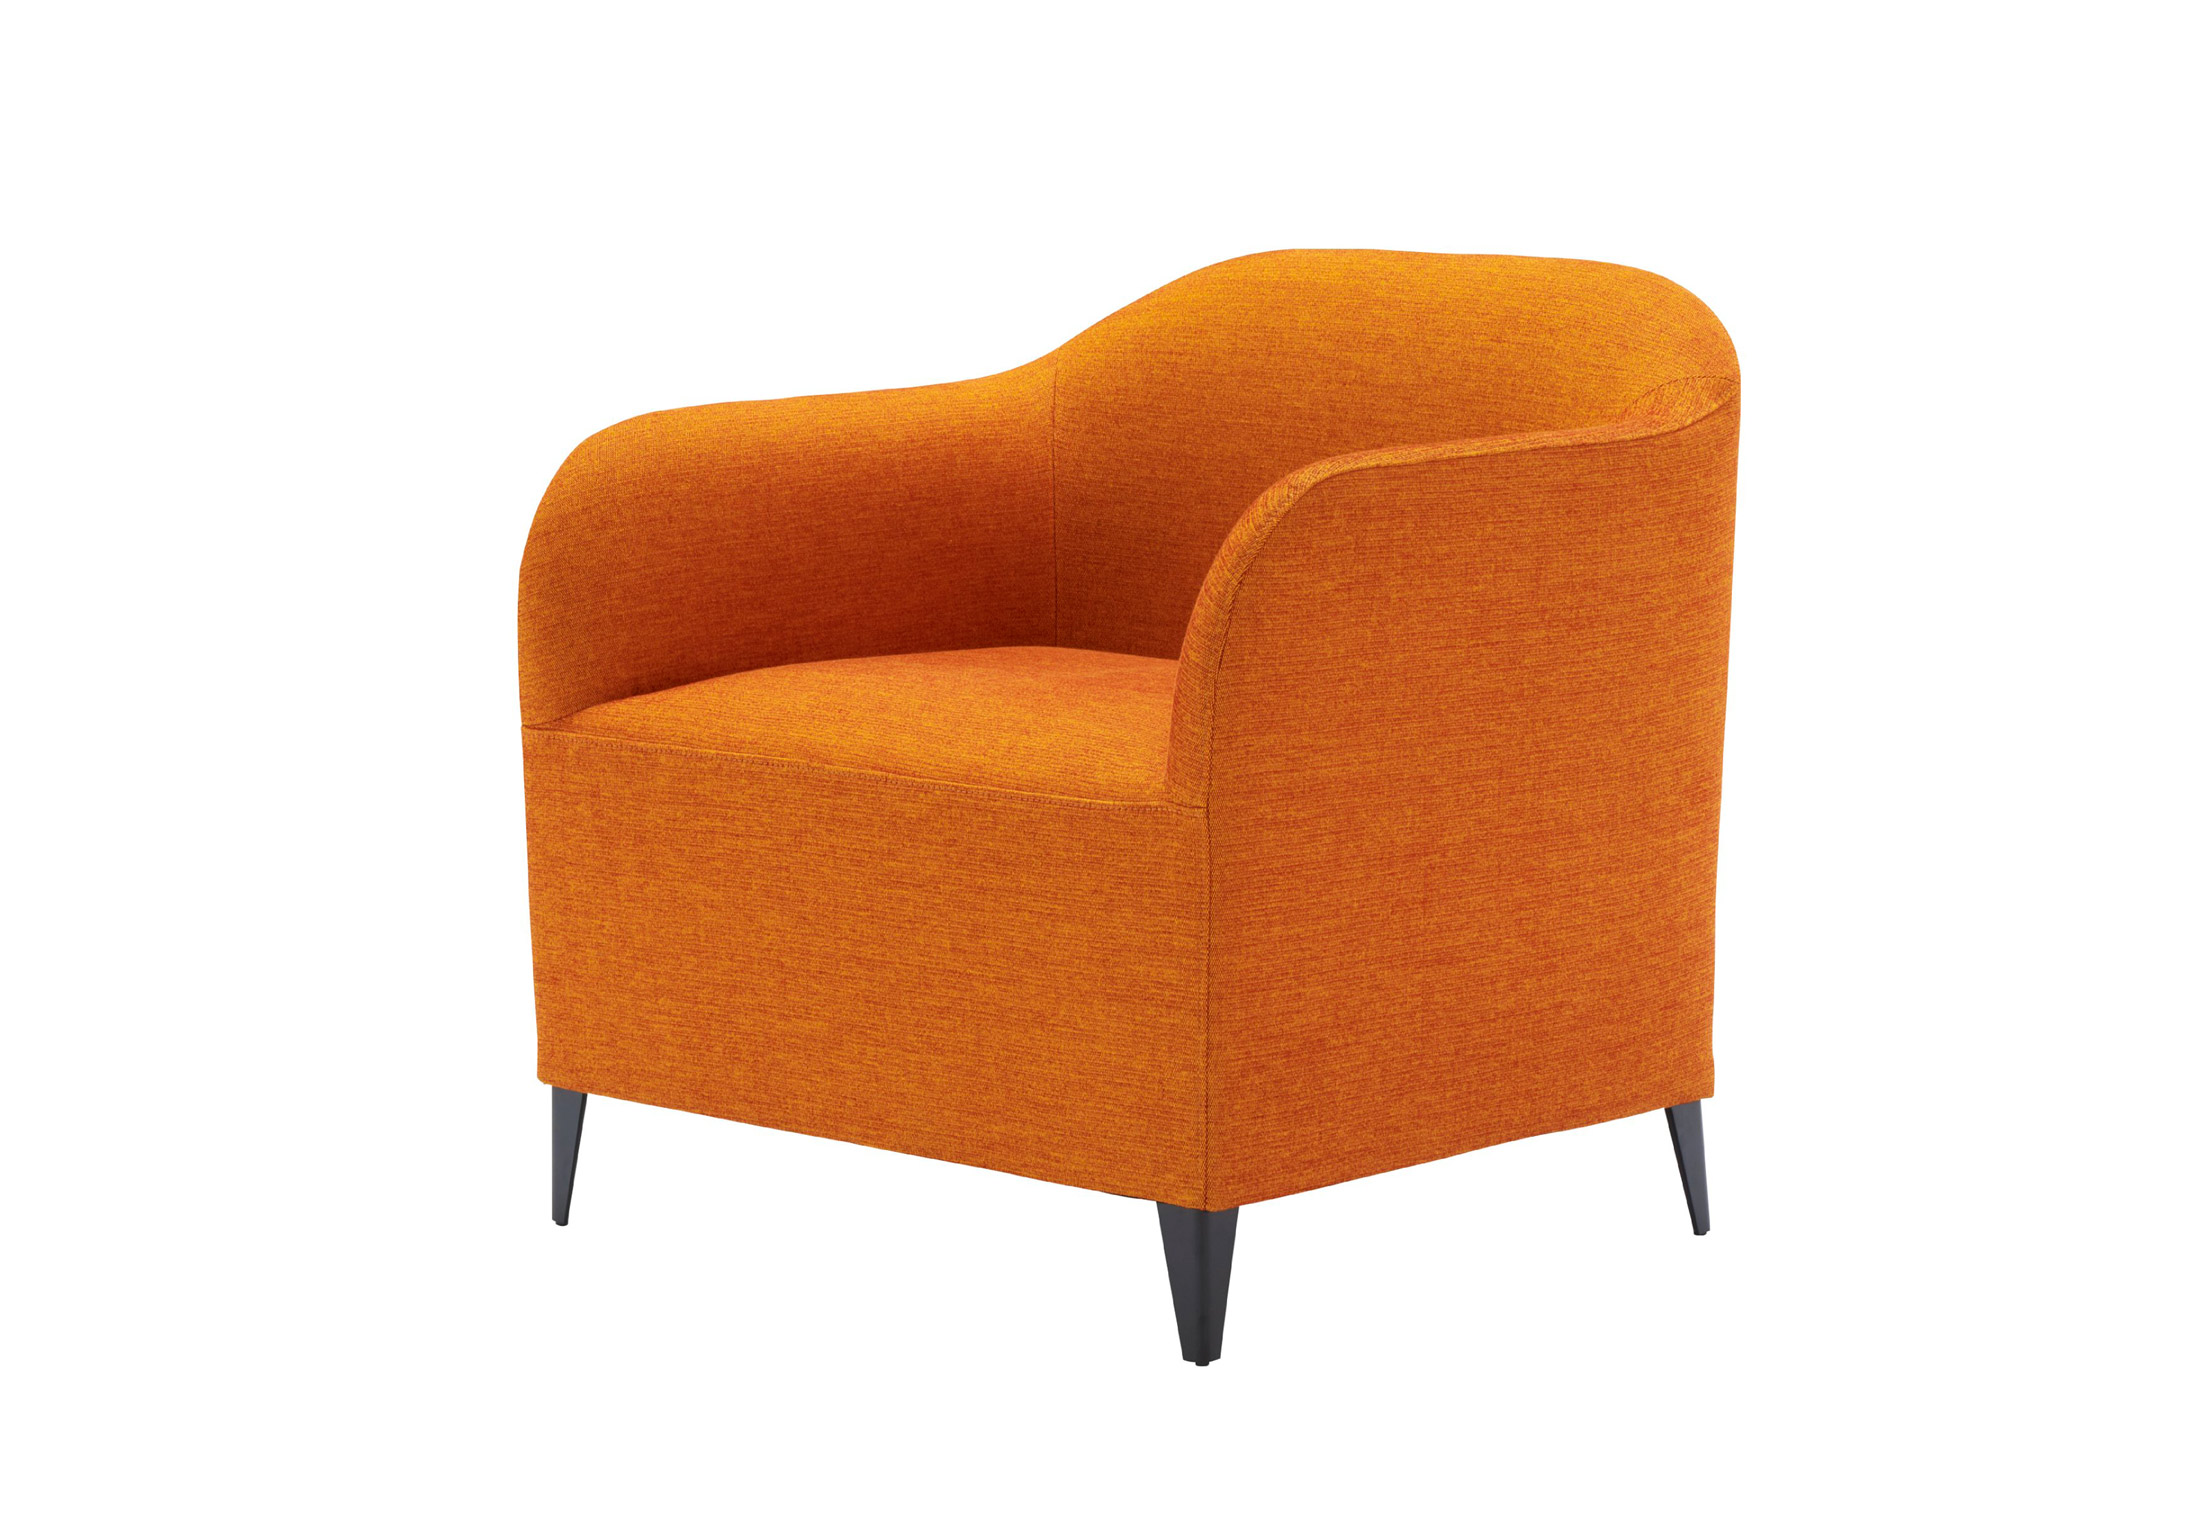 LUCA SOFT easy Chair; LUCA SOFT easy Chair ...  sc 1 st  Stylepark & LUCA SOFT easy Chair by ligne roset | STYLEPARK